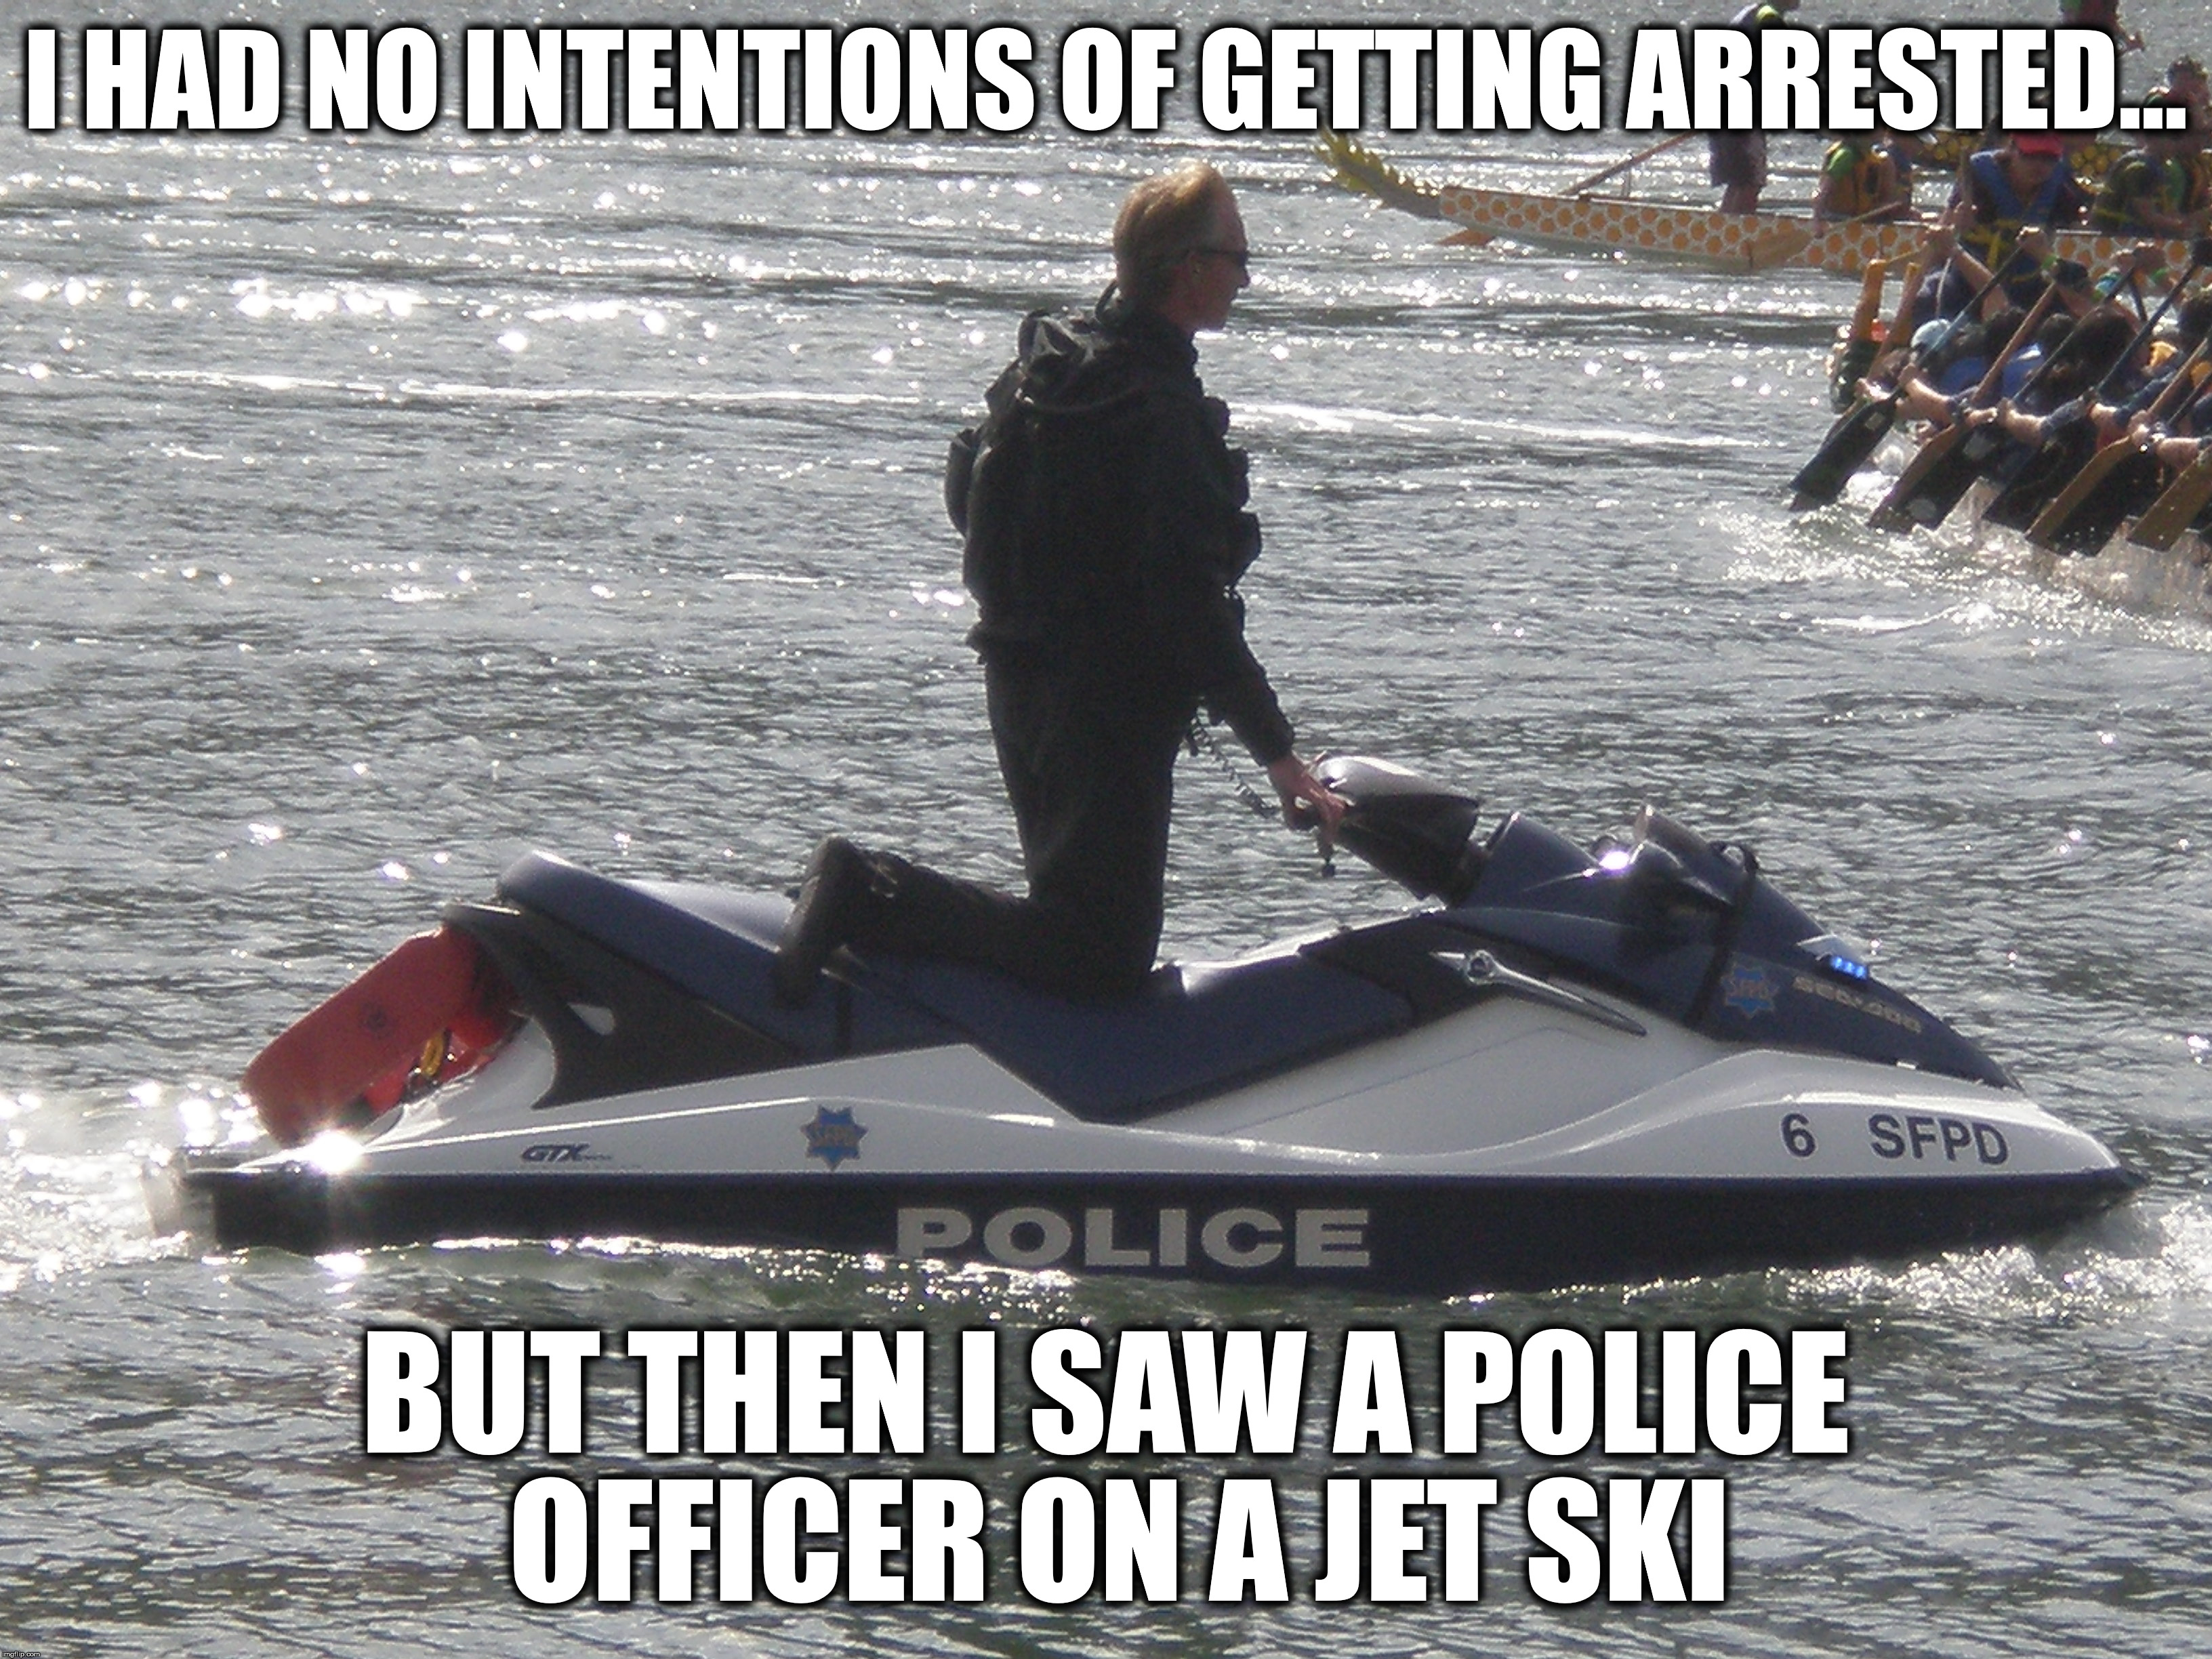 Police Officer on a Jet Ski | I HAD NO INTENTIONS OF GETTING ARRESTED... BUT THEN I SAW A POLICE OFFICER ON A JET SKI | image tagged in jet ski,police,arrested,arrest | made w/ Imgflip meme maker